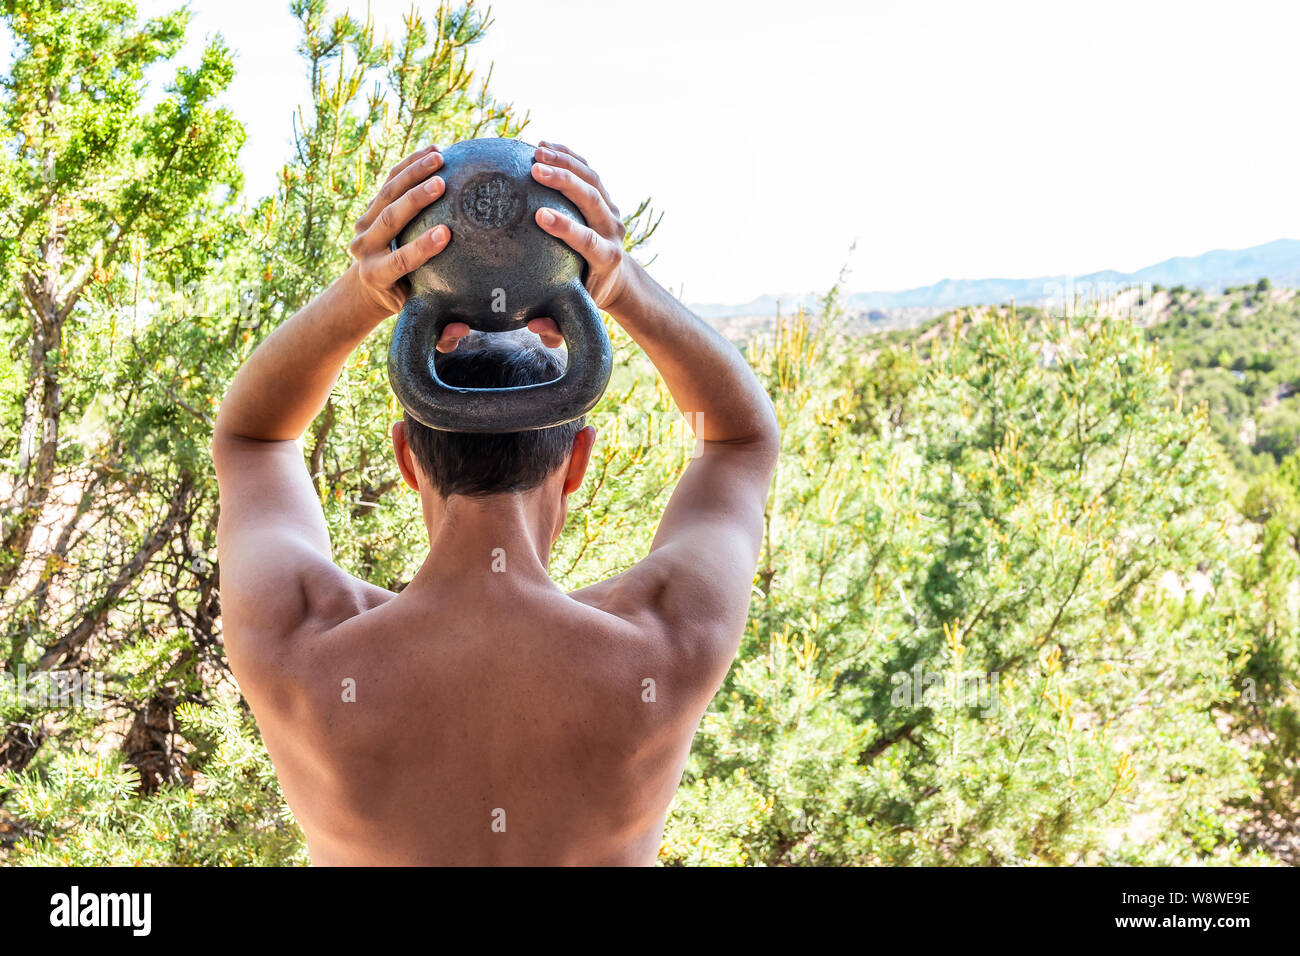 Back of young fit shirtless man with heavy kettlebell doing triceps exercise and muscles in outdoors outside park holding weight lifting Stock Photo